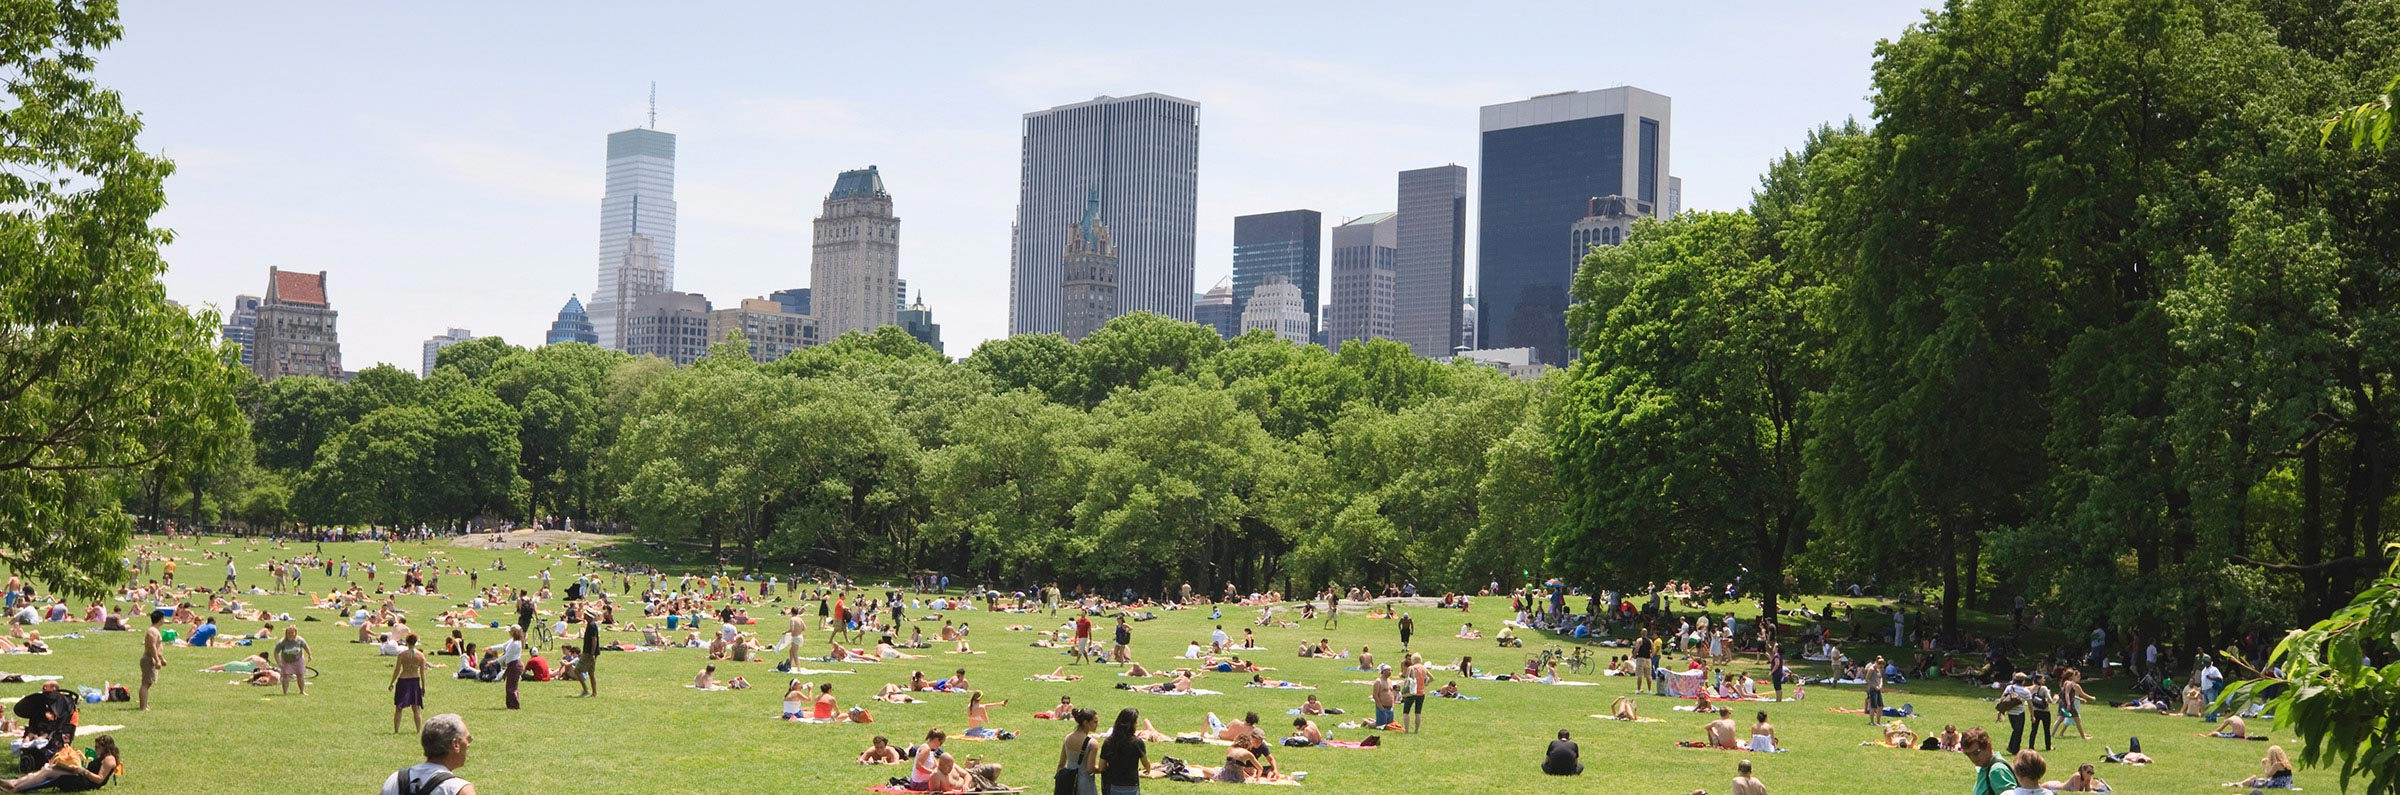 Sights and attractions in New York